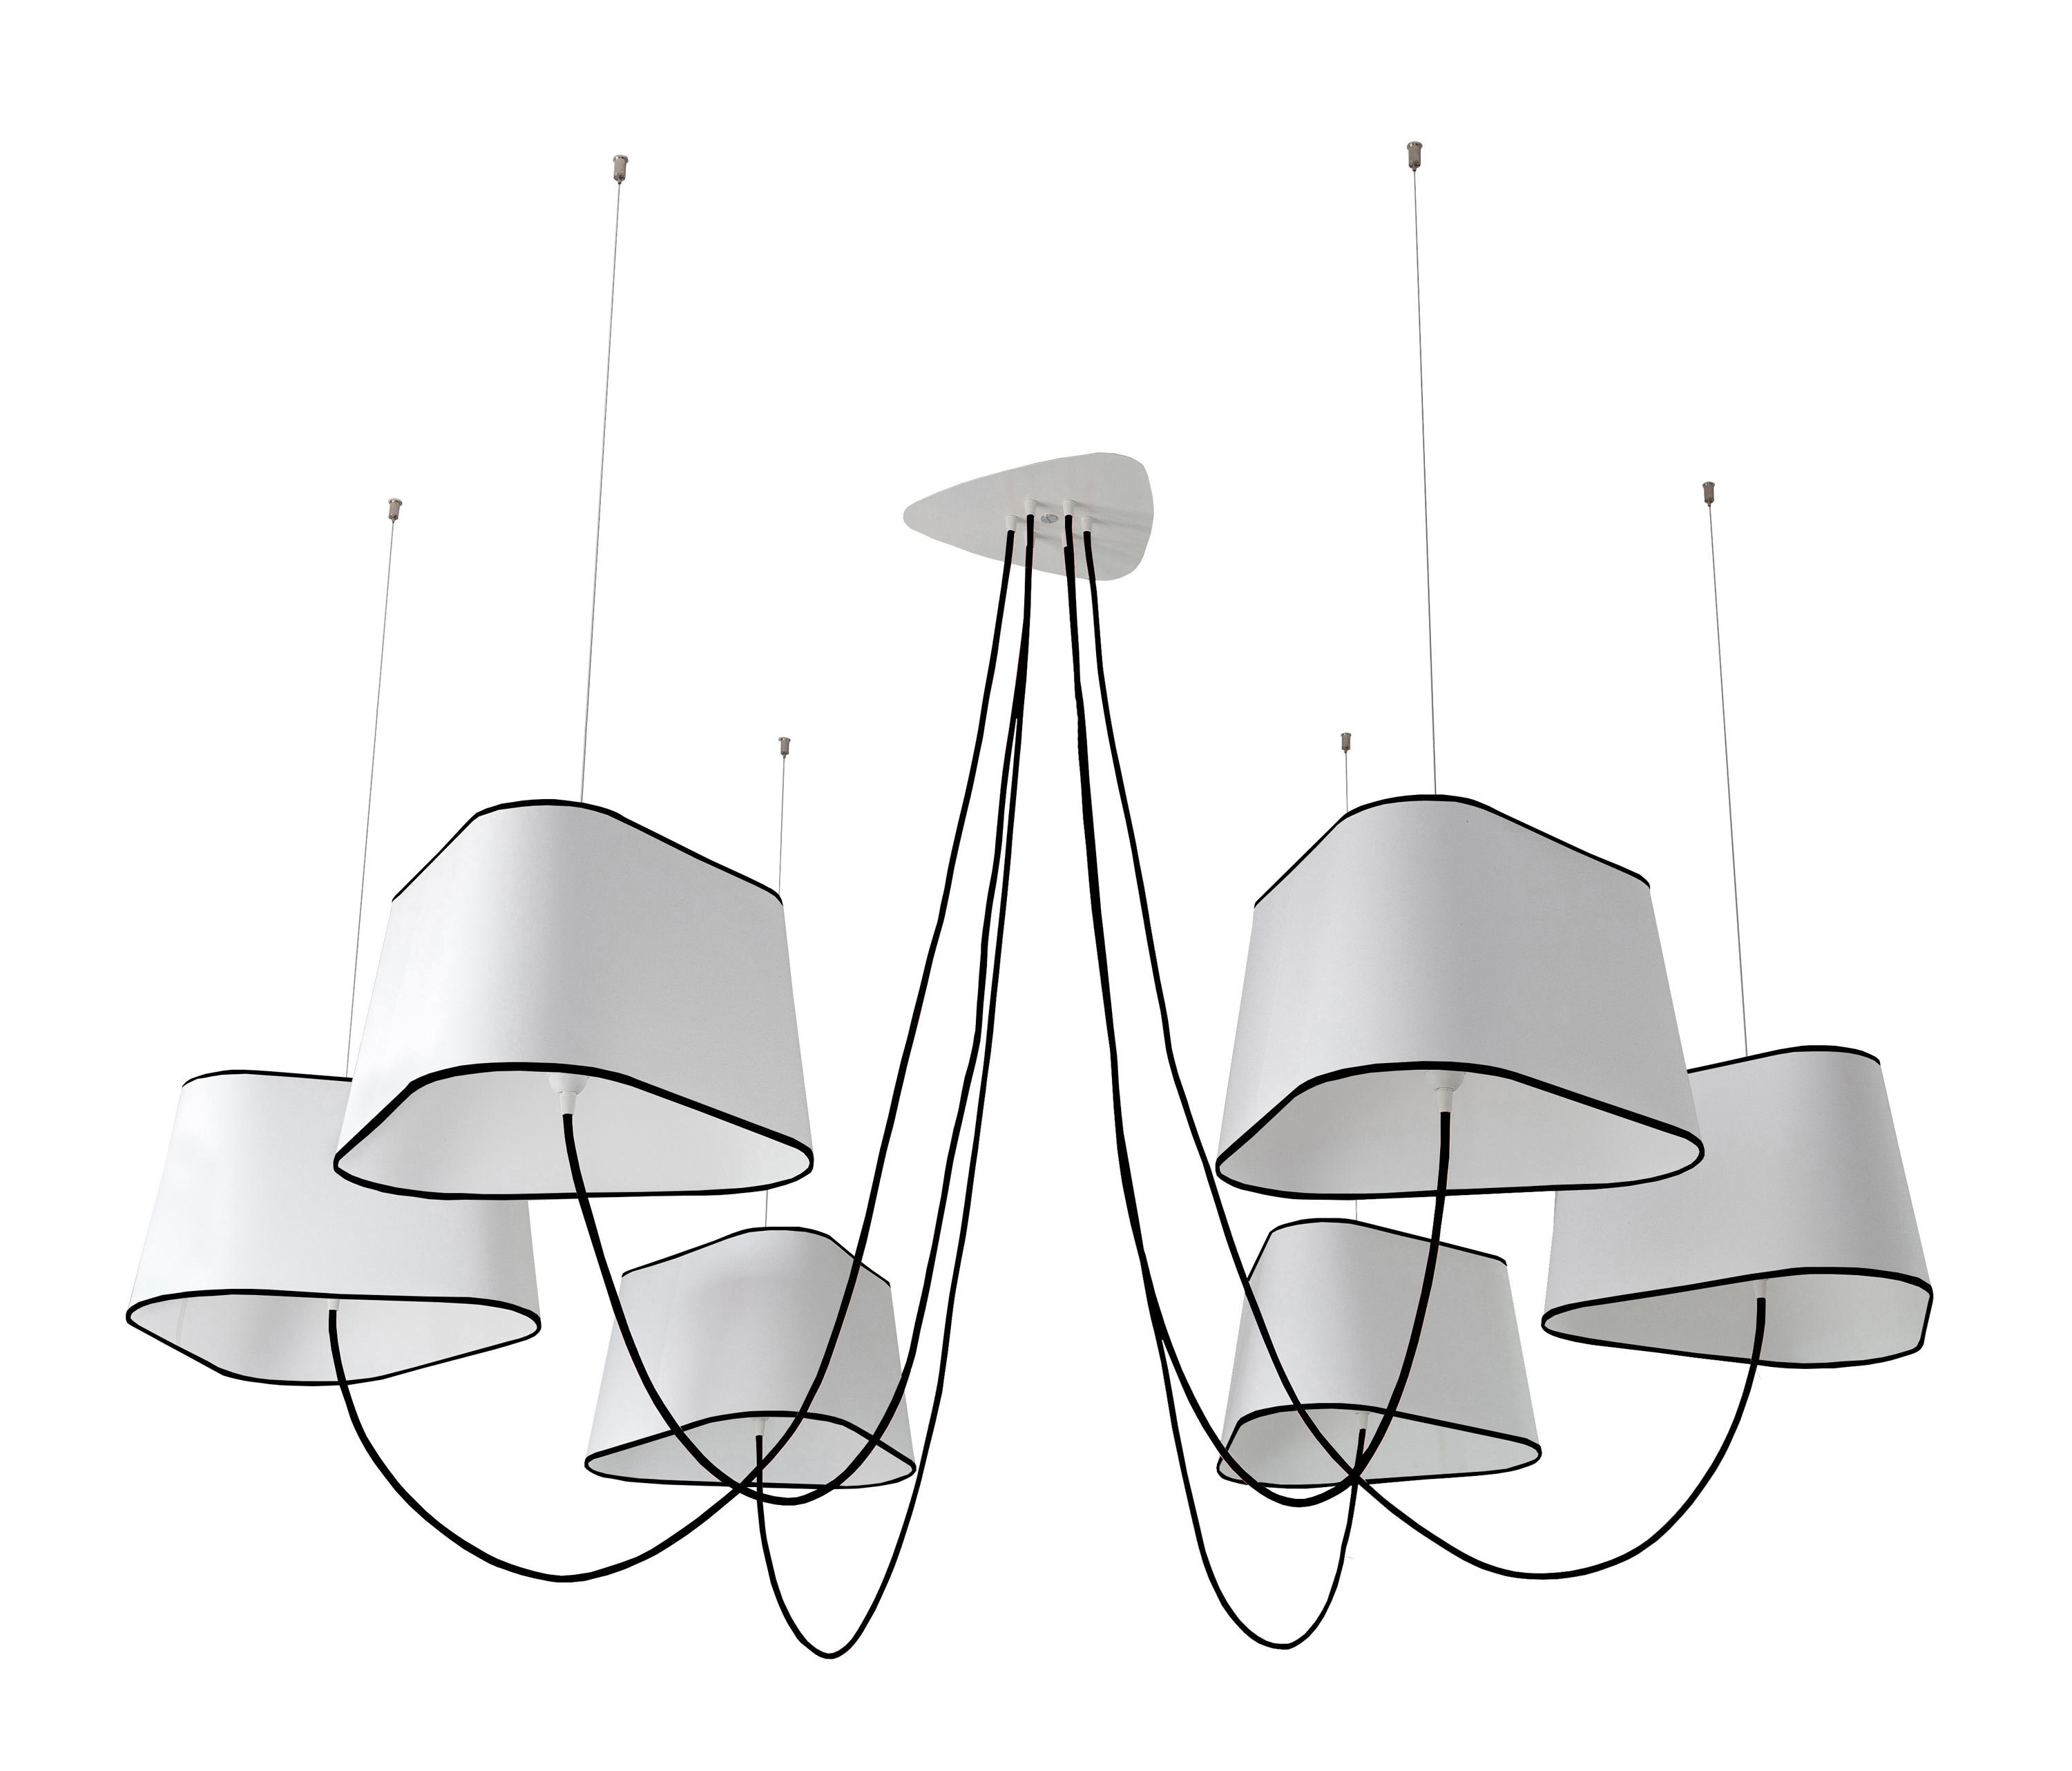 Nuage chandelier 6 large ceiling suspended chandeliers for Lustre 3 suspensions